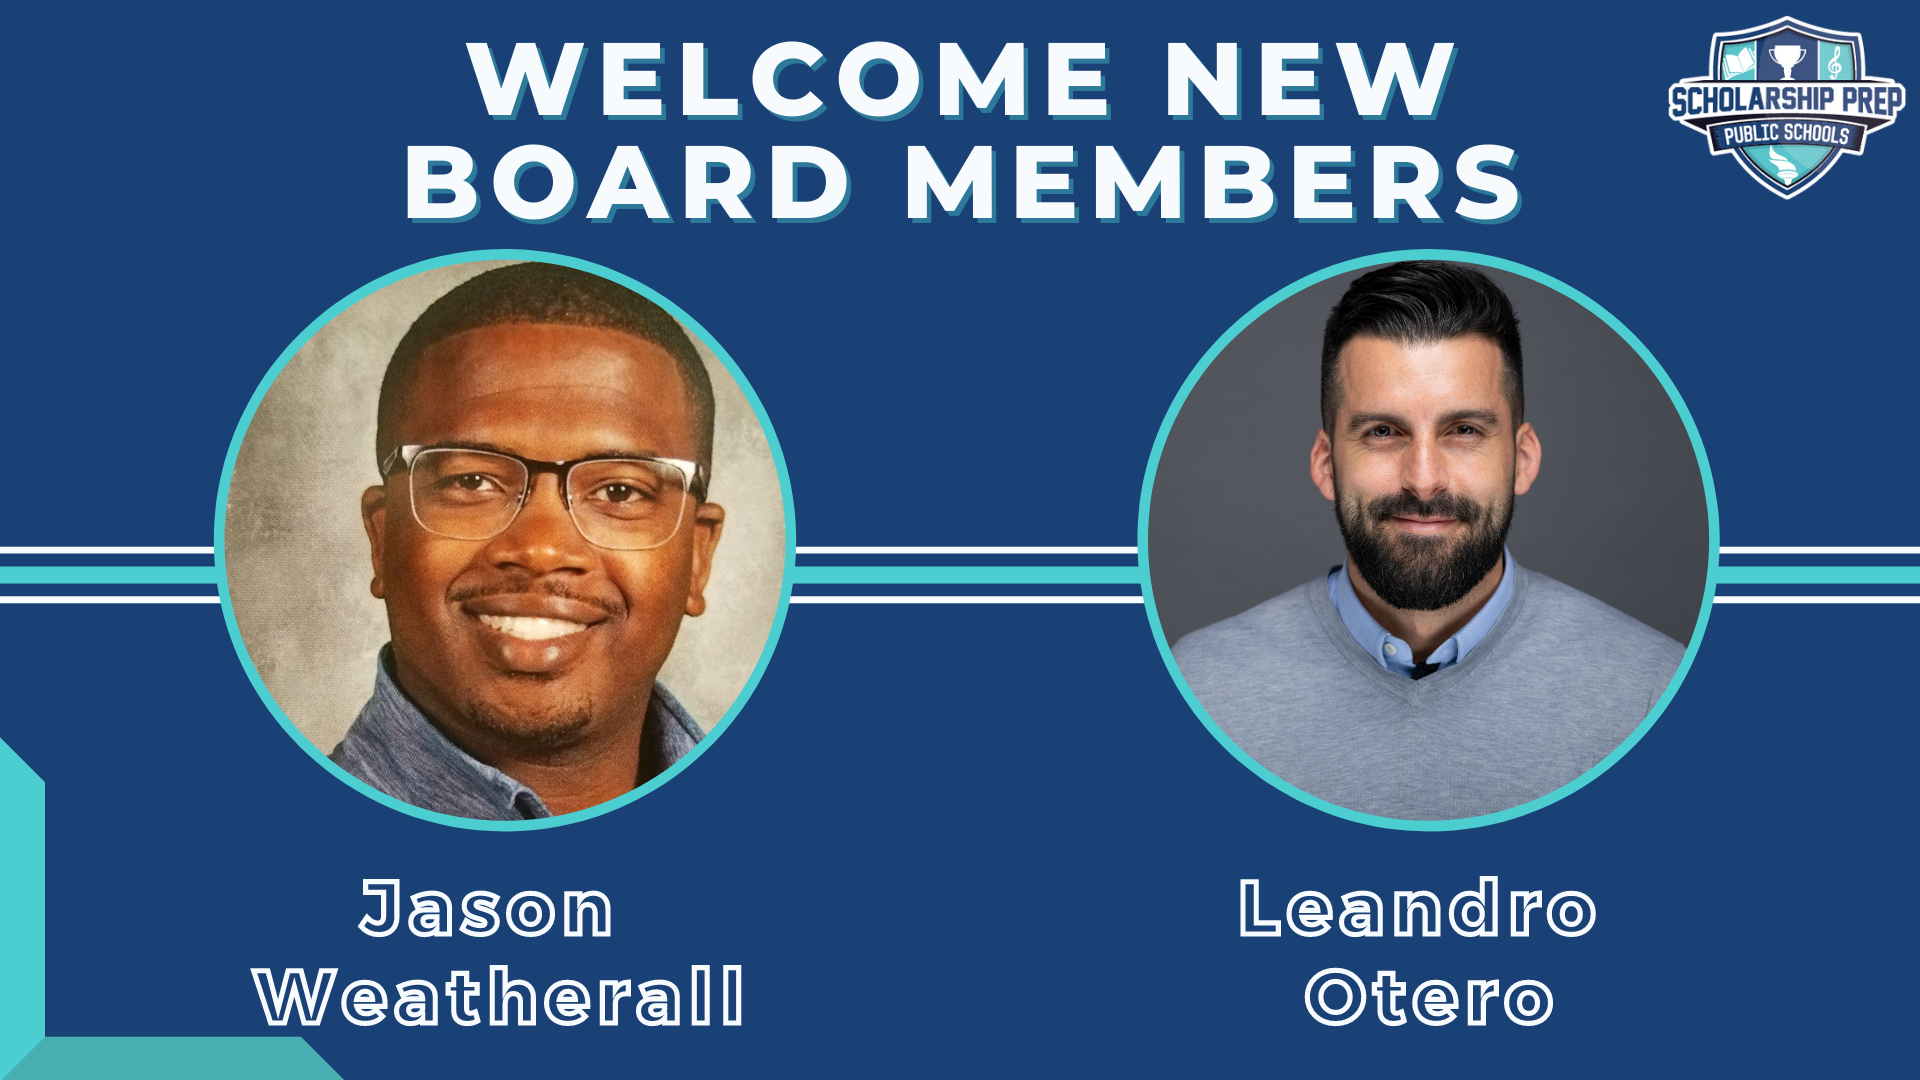 New Board Members Jason Weatherall and Leandro Otero